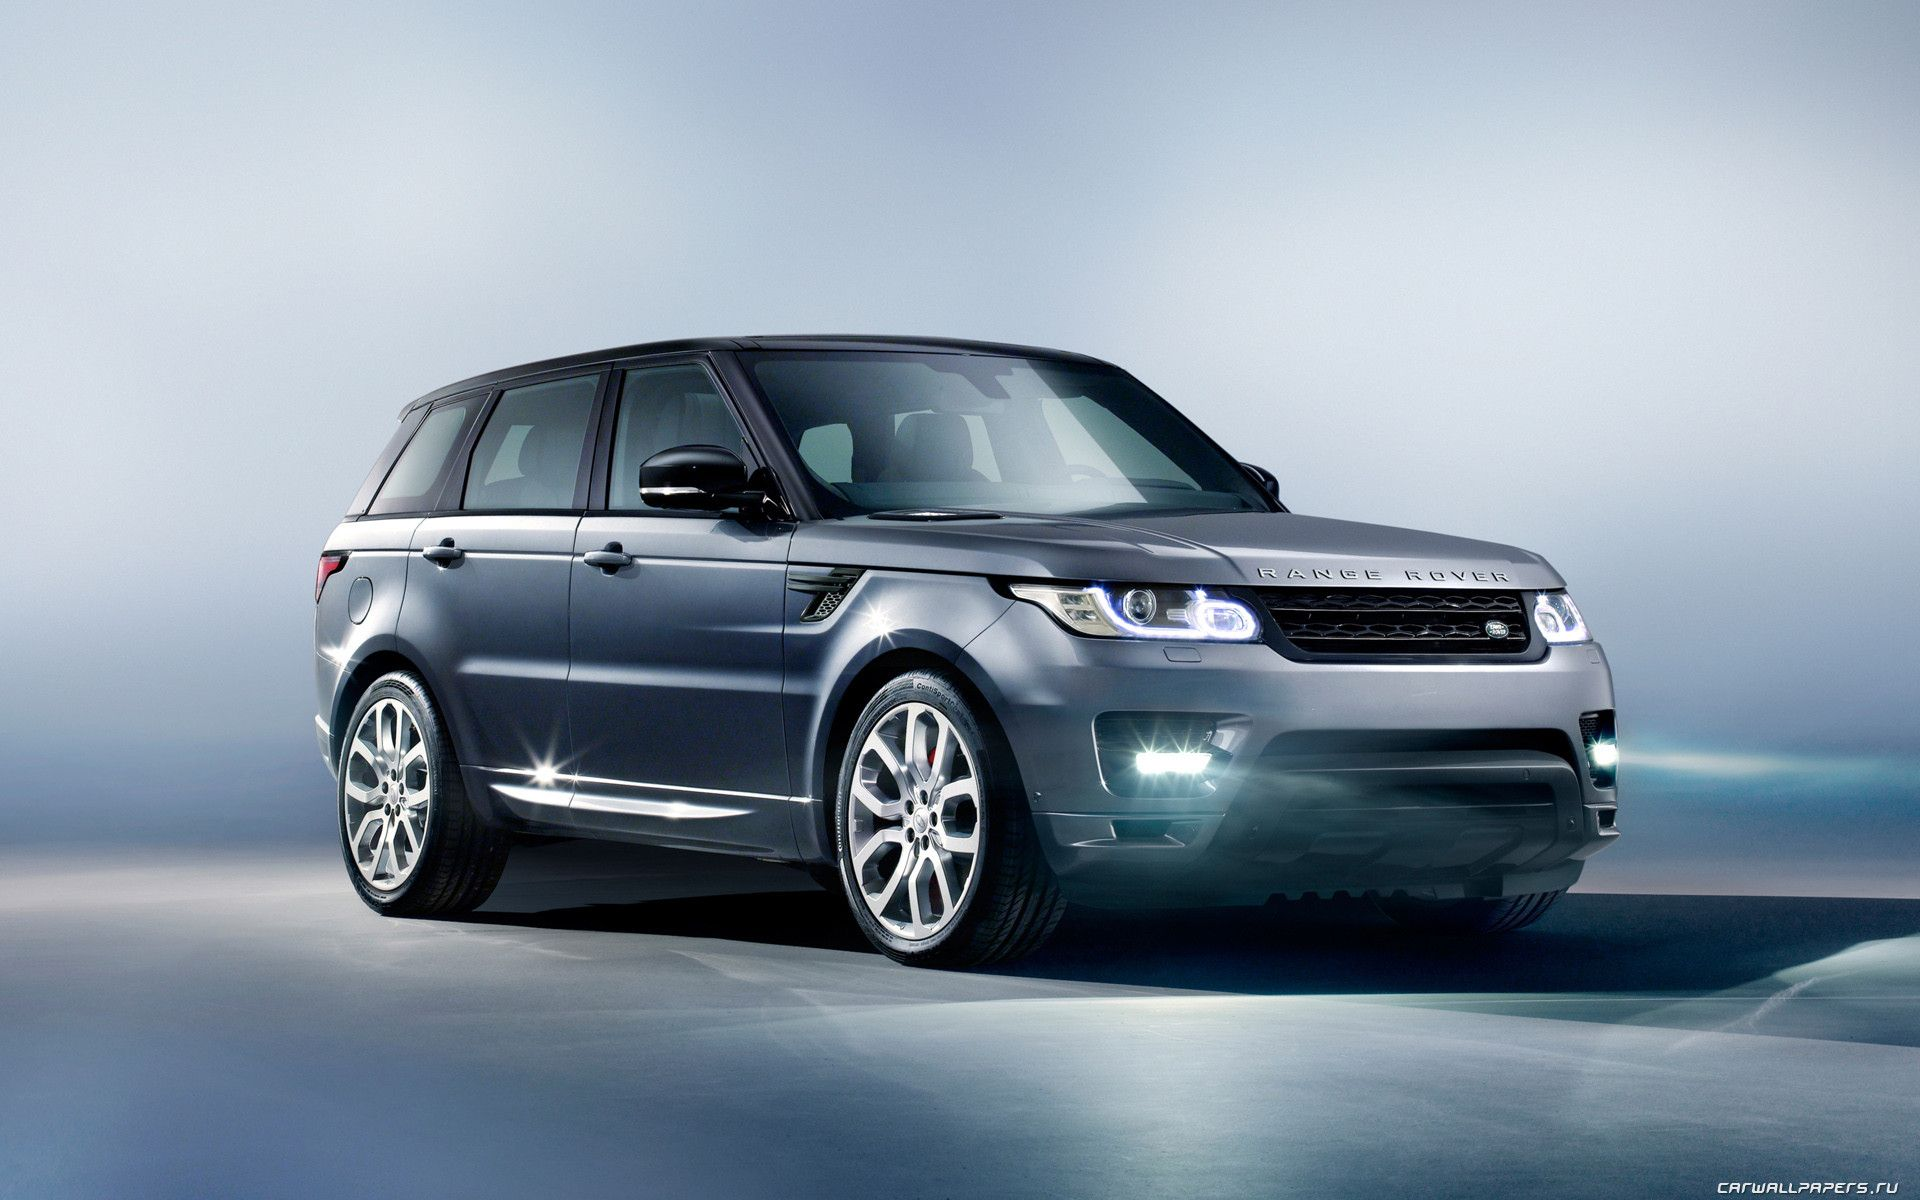 Range Rover Sport Wallpaper Range Rover Cars Wallpapers in jpg 1920x1200